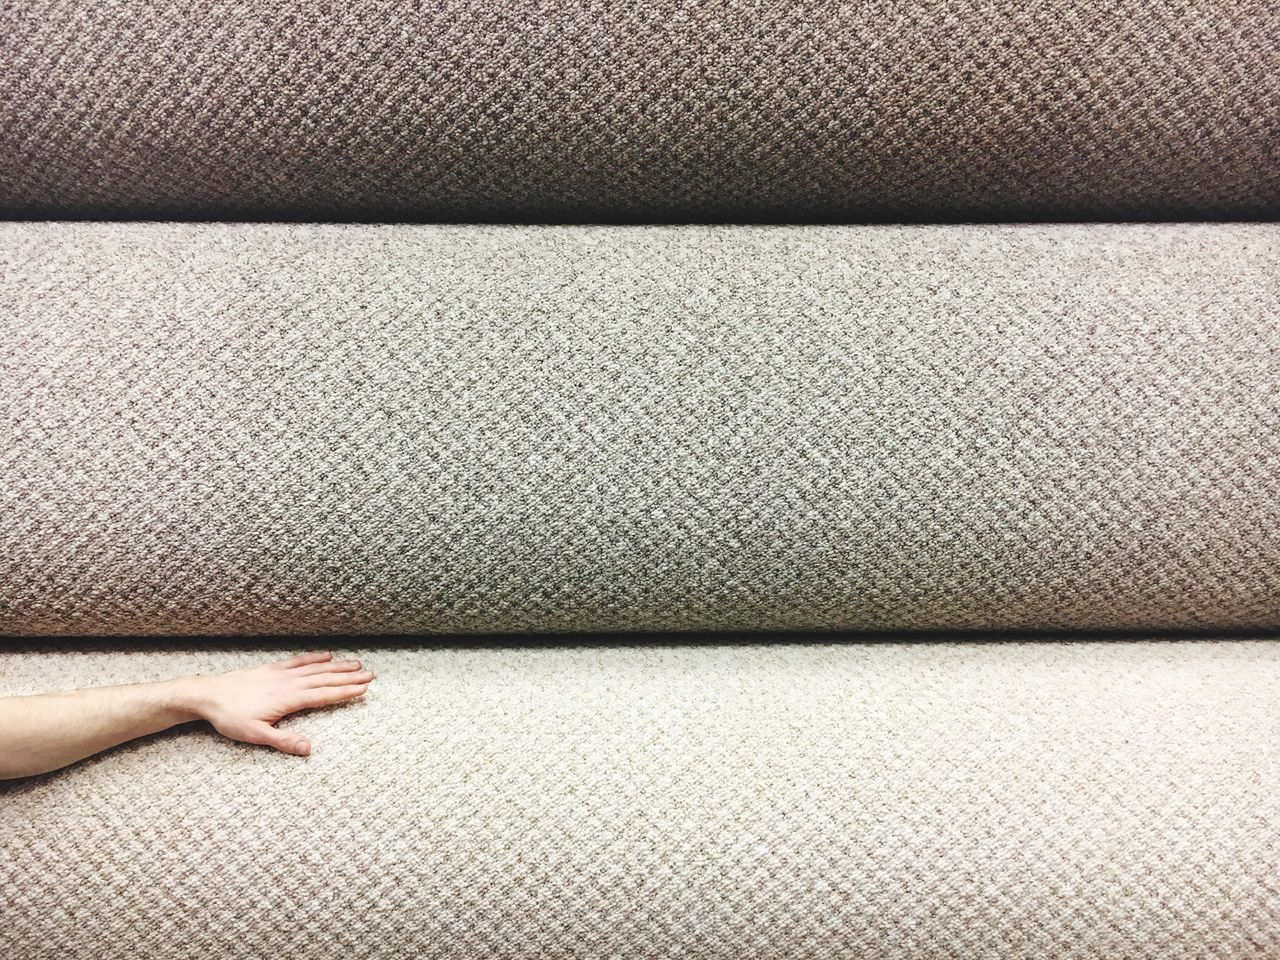 Carpet Shop Carpet Touching Touch Textured  Textures And Surfaces Roll Full Frame Human Body Part Indoors  Carpet Right Flooring Floor Colour Palette Interior Design Interior Minimalism Minimalobsession Shades Of Grey Simplicity Broken Patterns BYOPaper!